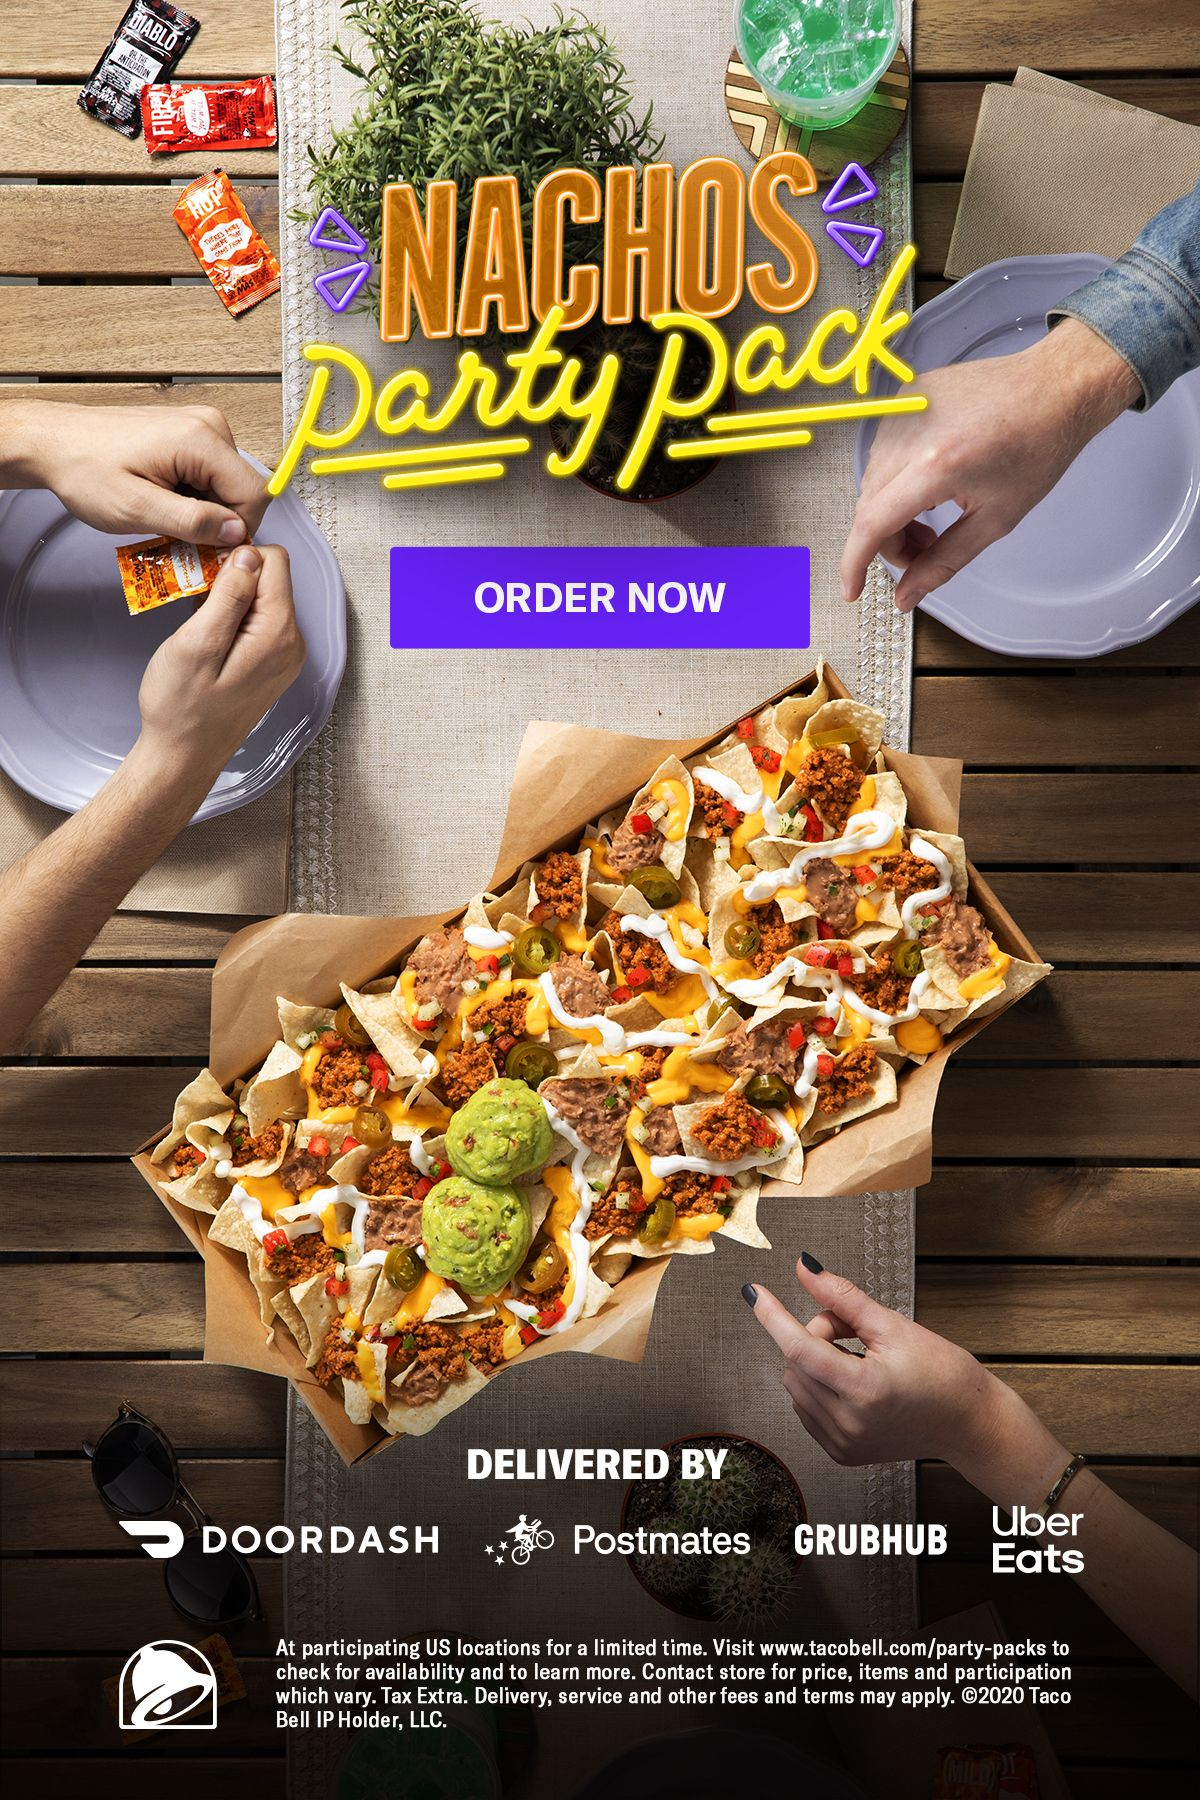 Get Taco Bell S Nachos Party Pack Delivered Nacho Party Food Best Food Ever